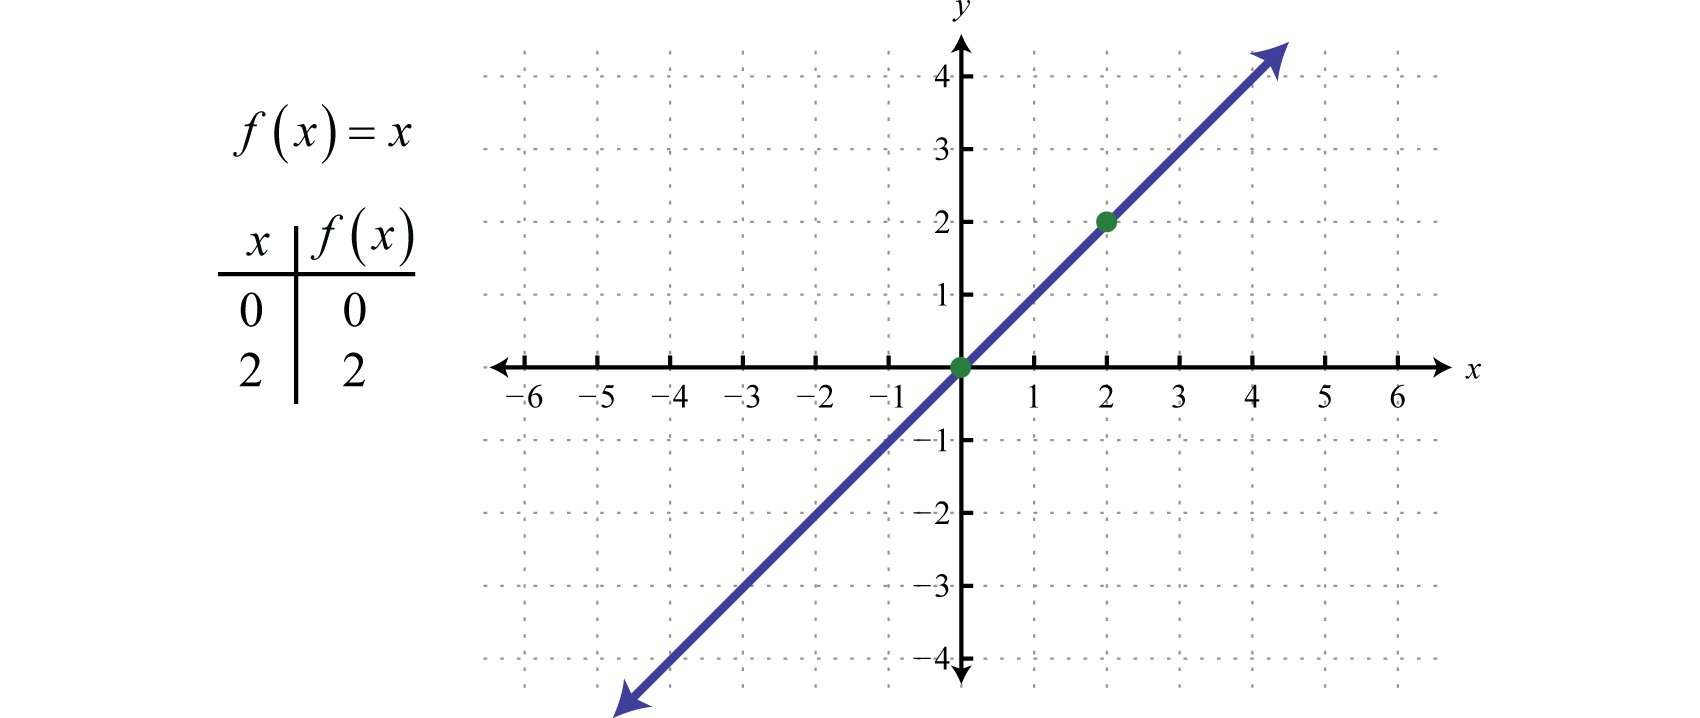 The Identity Function Is Linear, F ( X ) = 1 X + 0 , With Slope M = 1 And  Yintercept (0, 0) The Domain And Range Both Consist Of